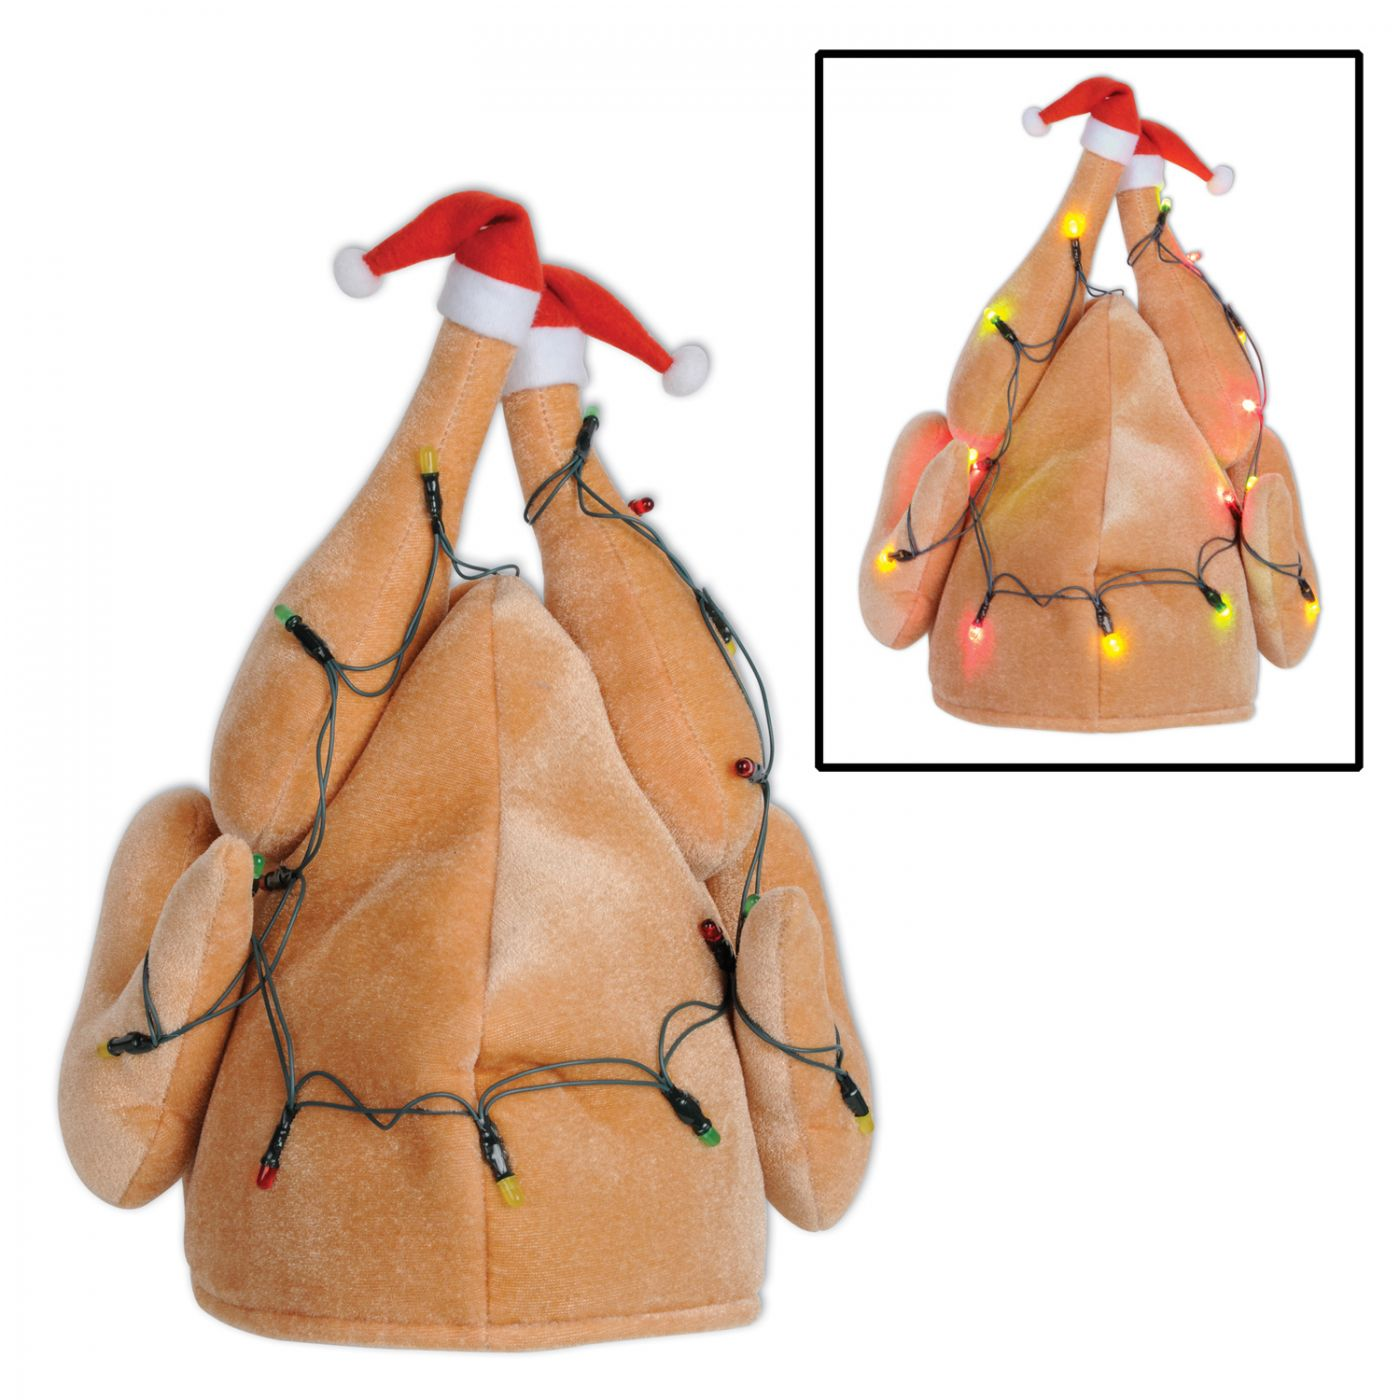 Image of Plush Light-Up Christmas Turkey Hat (6)